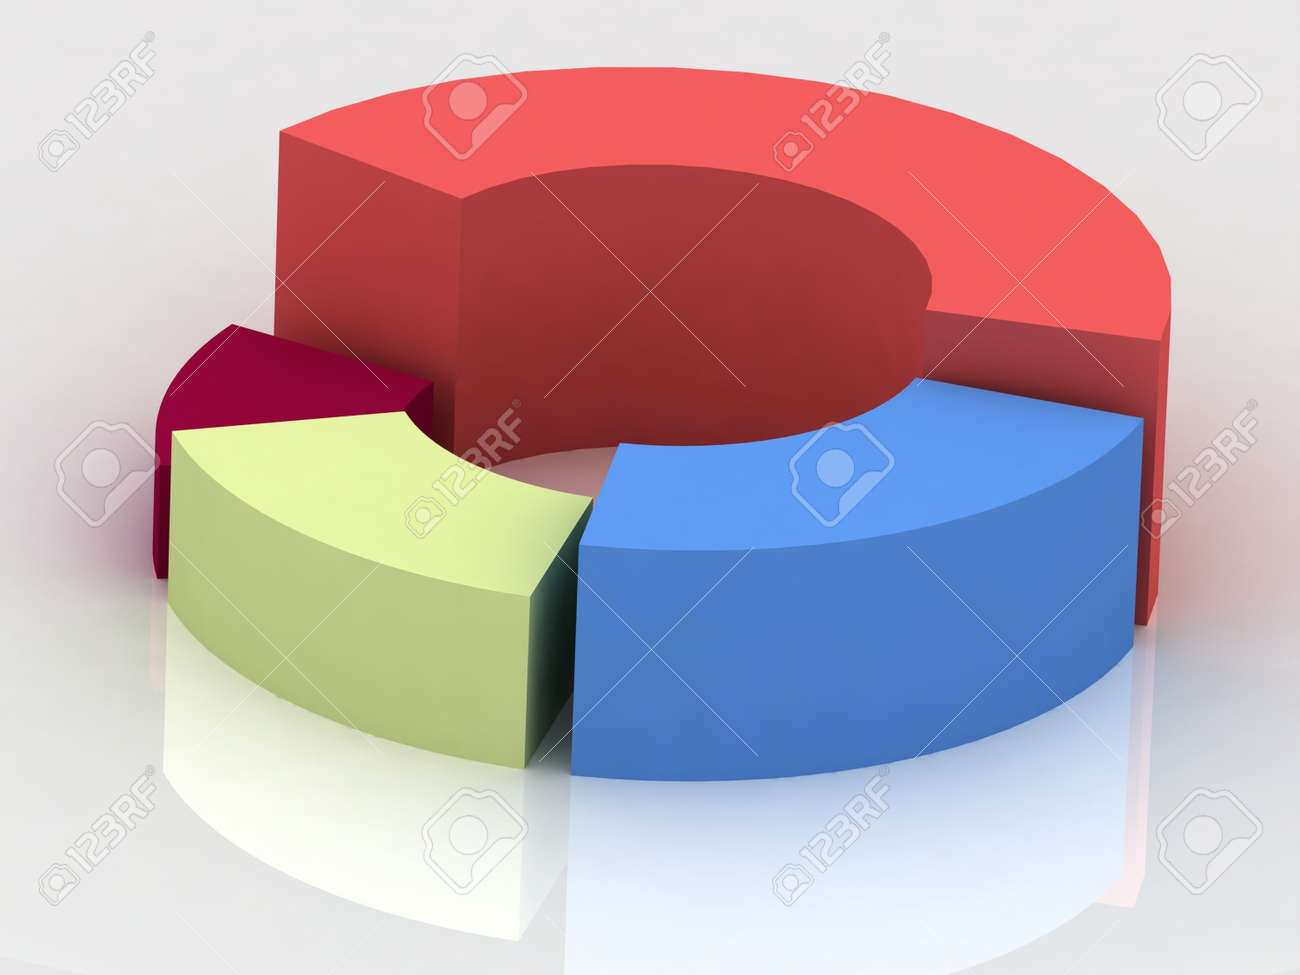 hight resolution of 3d circular diagram on white background stock photo 11948623